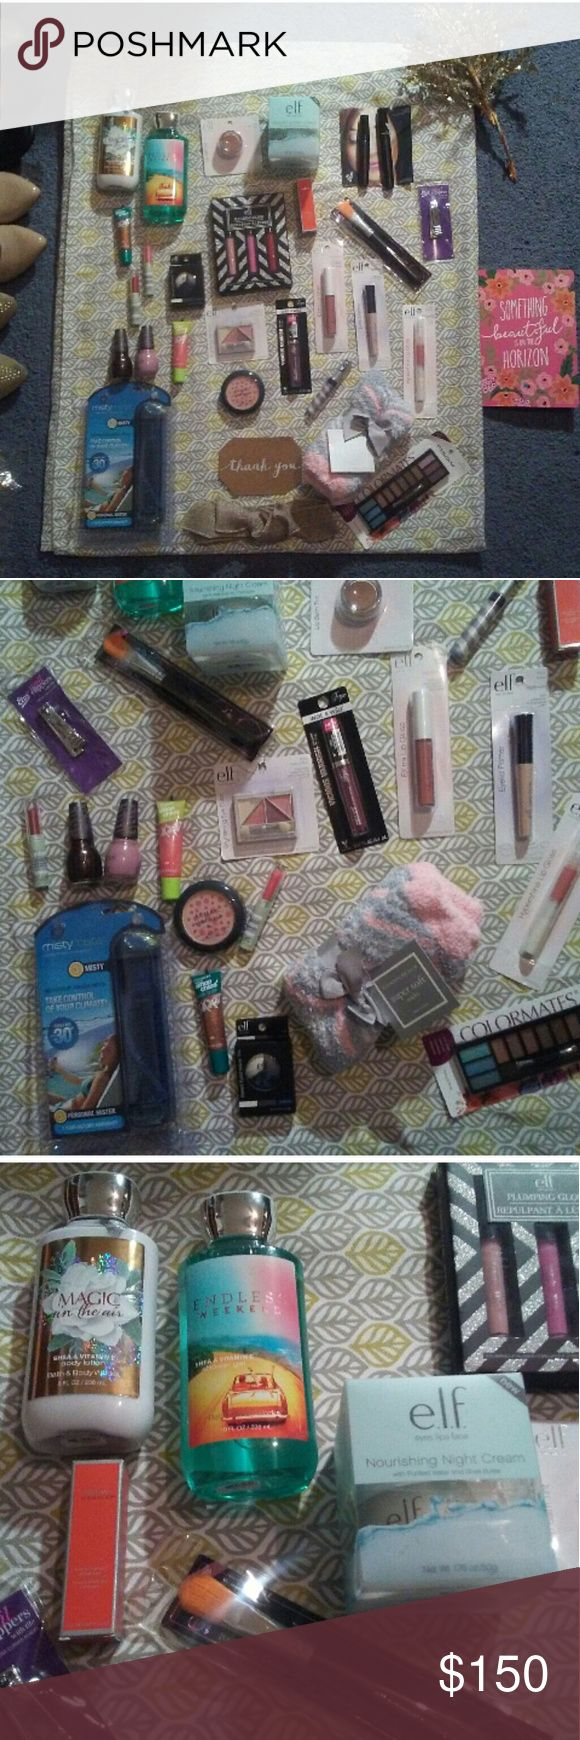 """🆕 NWT HUGE BEAUTY LOT 🆕 Everything listed is 🆕   Bath & Body Works Magic in the air lotion Bath & Body Works Endless Weekend shower gel Charter Club Super Soft Socks Misty Mate Personal Mister  Almay Smart Shade #10 Pink Rose Blush 2 Covergirl Smoochies Sizzle Gloss #556 """"Glow for it"""" & 540 """"Hot Stuff"""" 2 Covergirl Natureluxe Gloss Balm #255 """"Marble"""" & #225 """"Anemone"""" 2 Kylie Jenner for Sinful Colors Demi-Matte Trend Matters Velvet Nail Polish in """"I klove you"""" & """"Mauve on""""  ⬇LOOK IN…"""